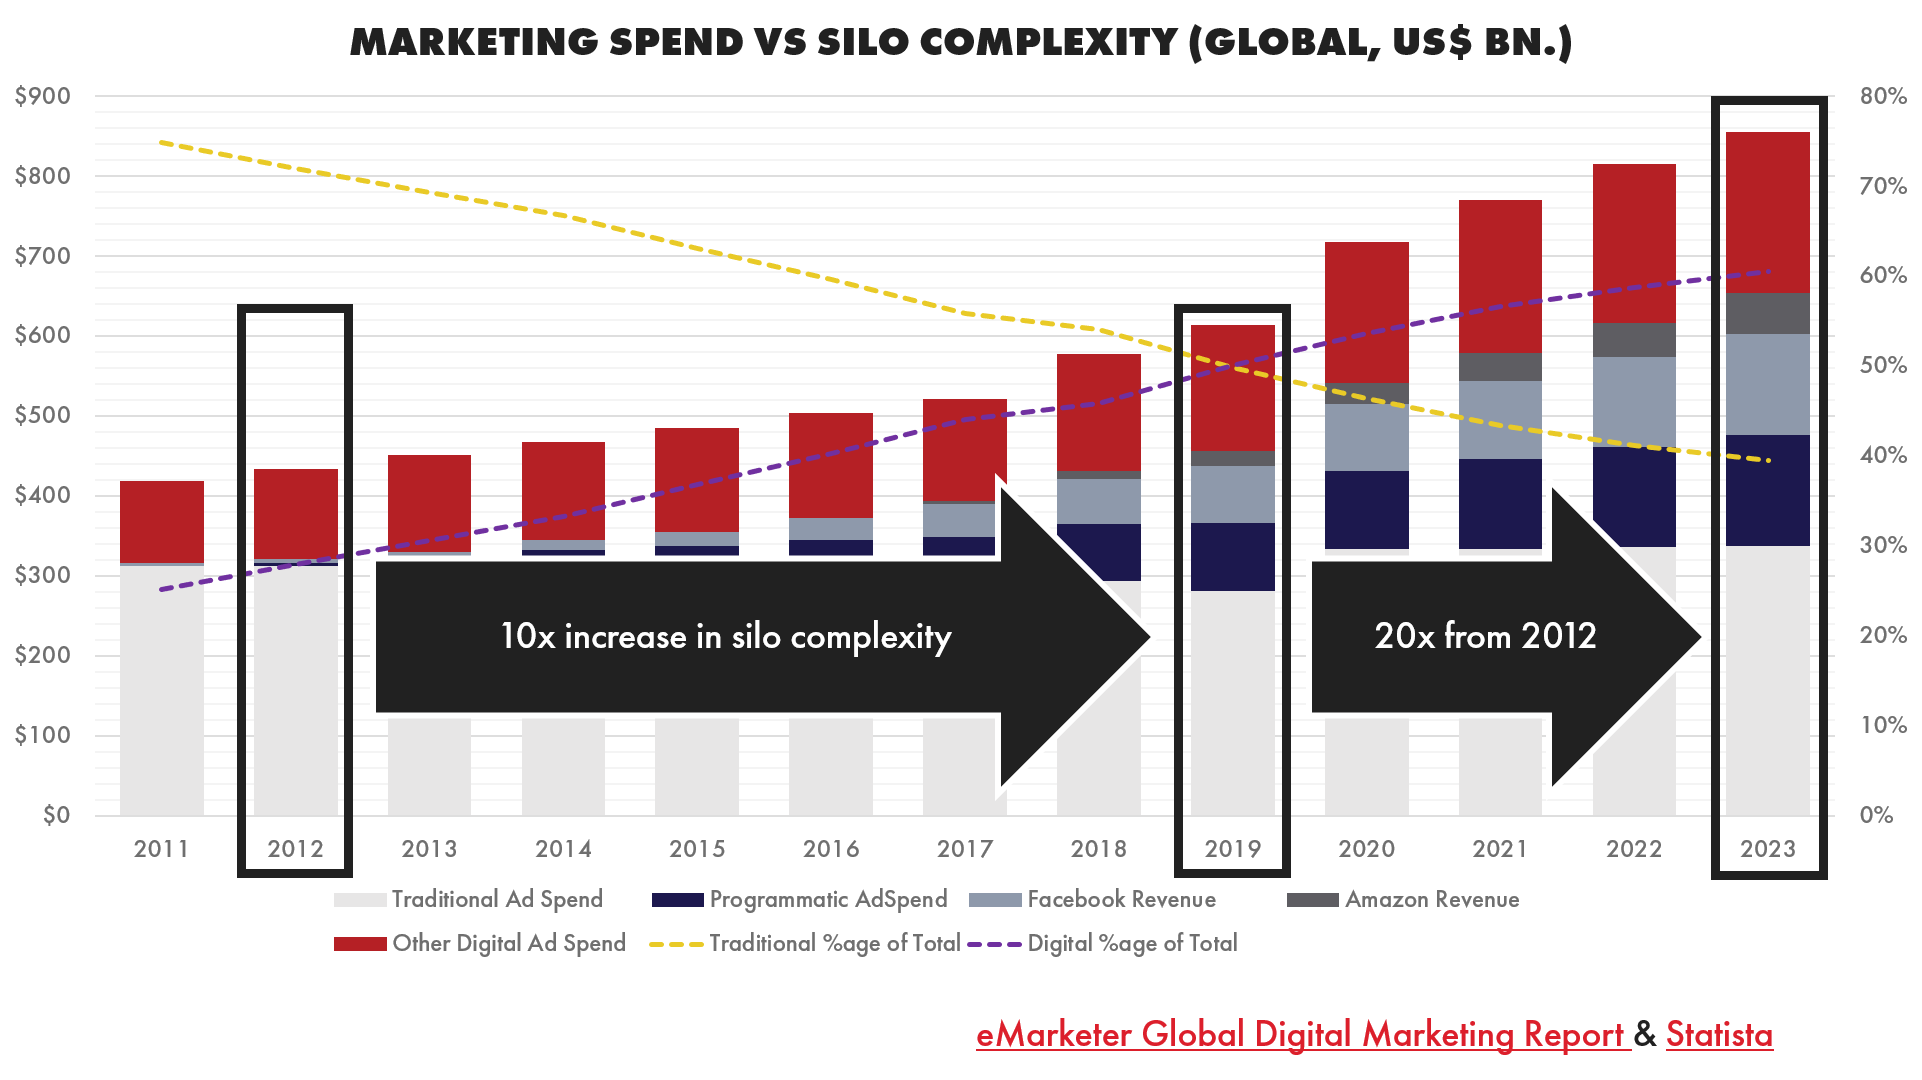 Global marketing spend